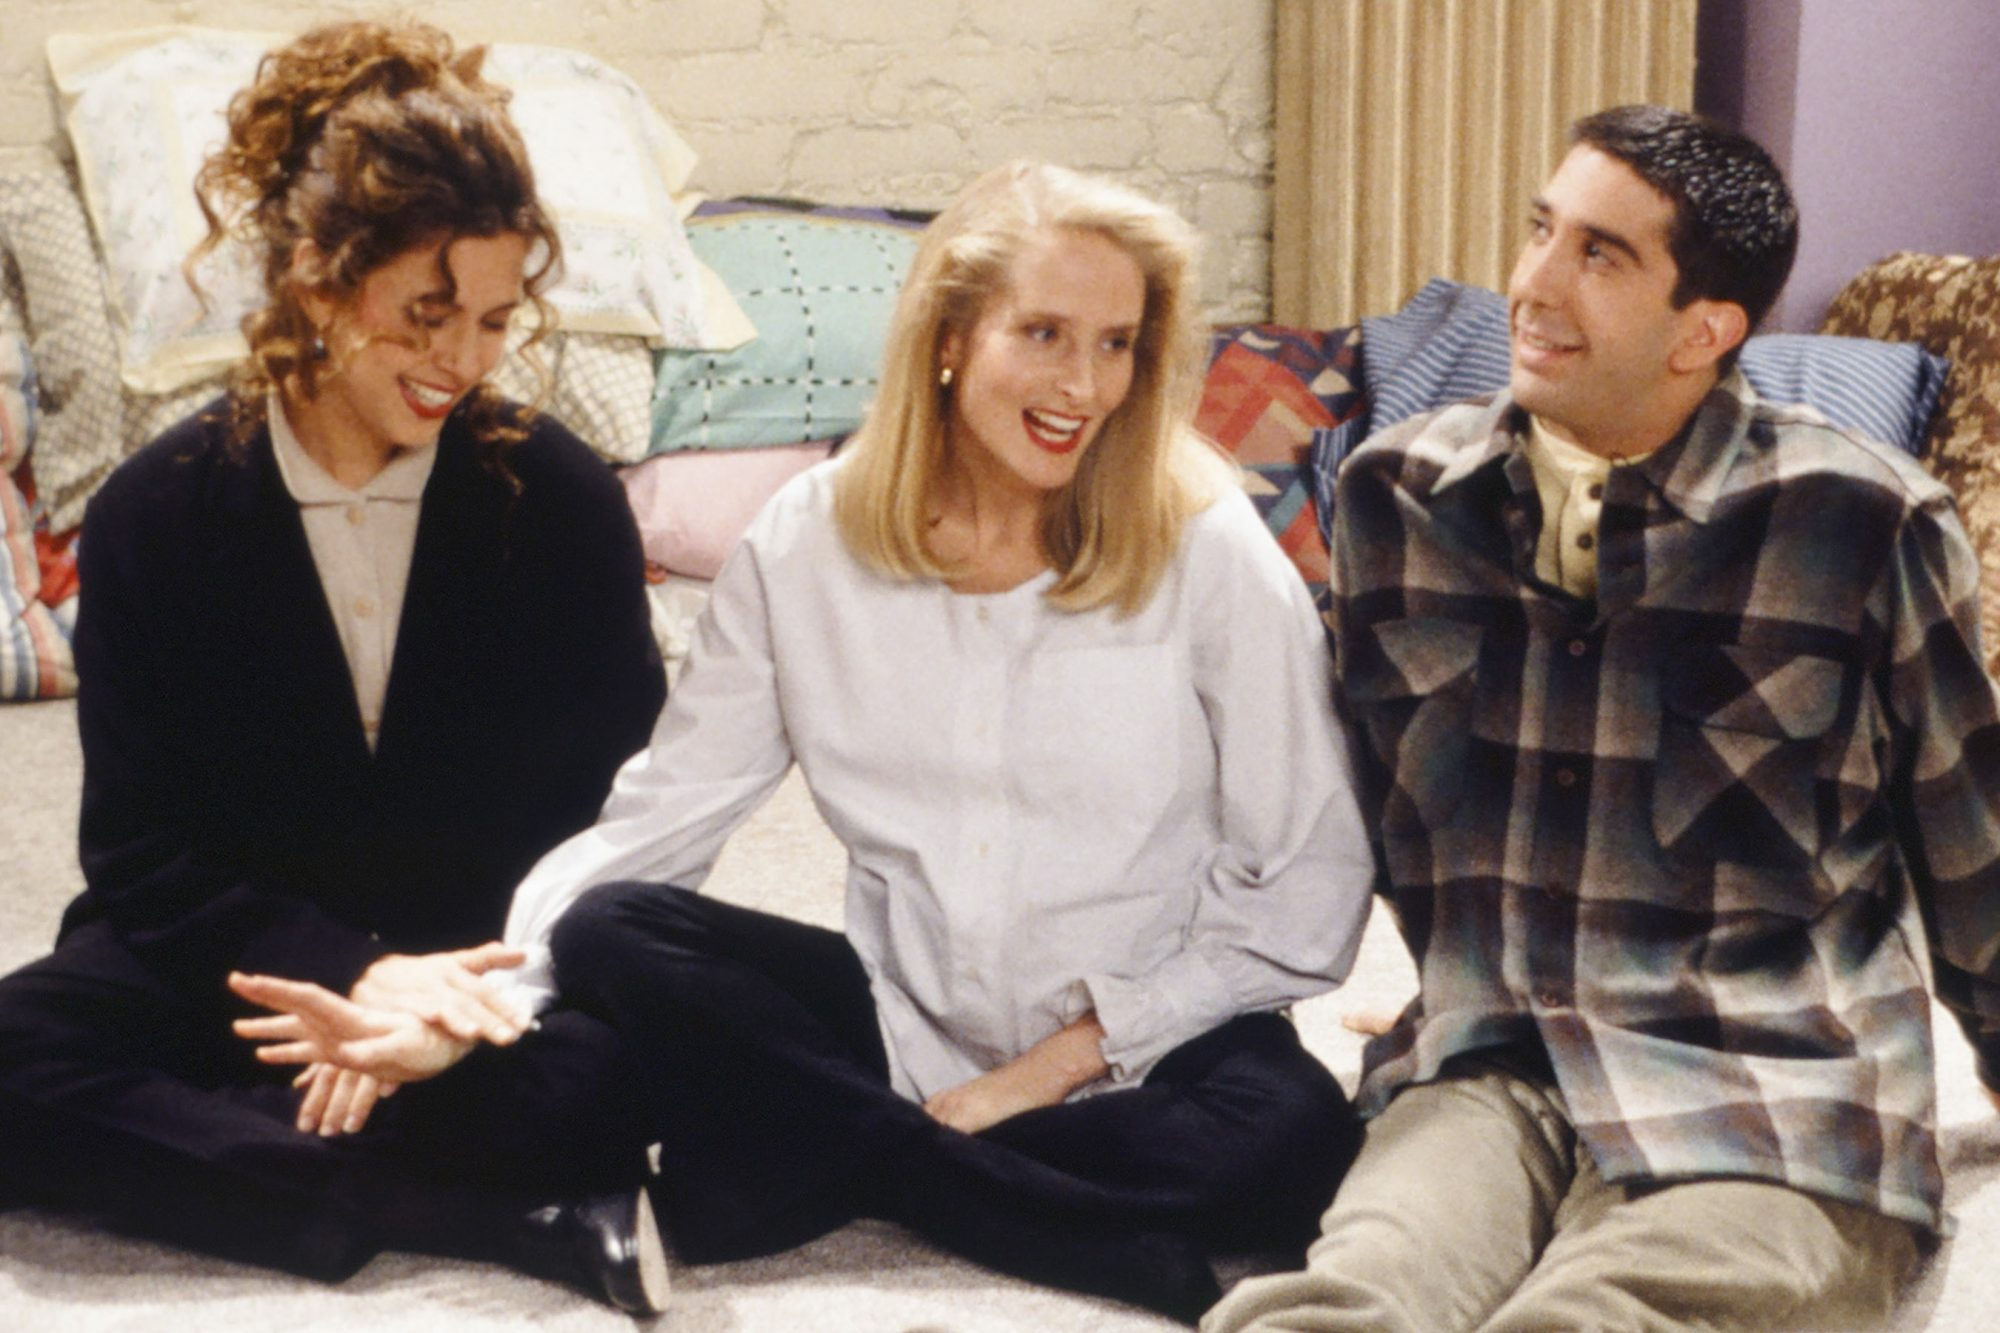 """FRIENDS -- """"The One With Two Parts: Part 1"""" Episode 116 -- Pictured: (l-r) Jessica Hecht as Susan Bunch, Jane Sibbett as Carol Willick, David Schwimmer as Ross Geller -- (Photo by: Paul Drinkwater/NBC/NBCU Photo Bank via Getty Images)"""